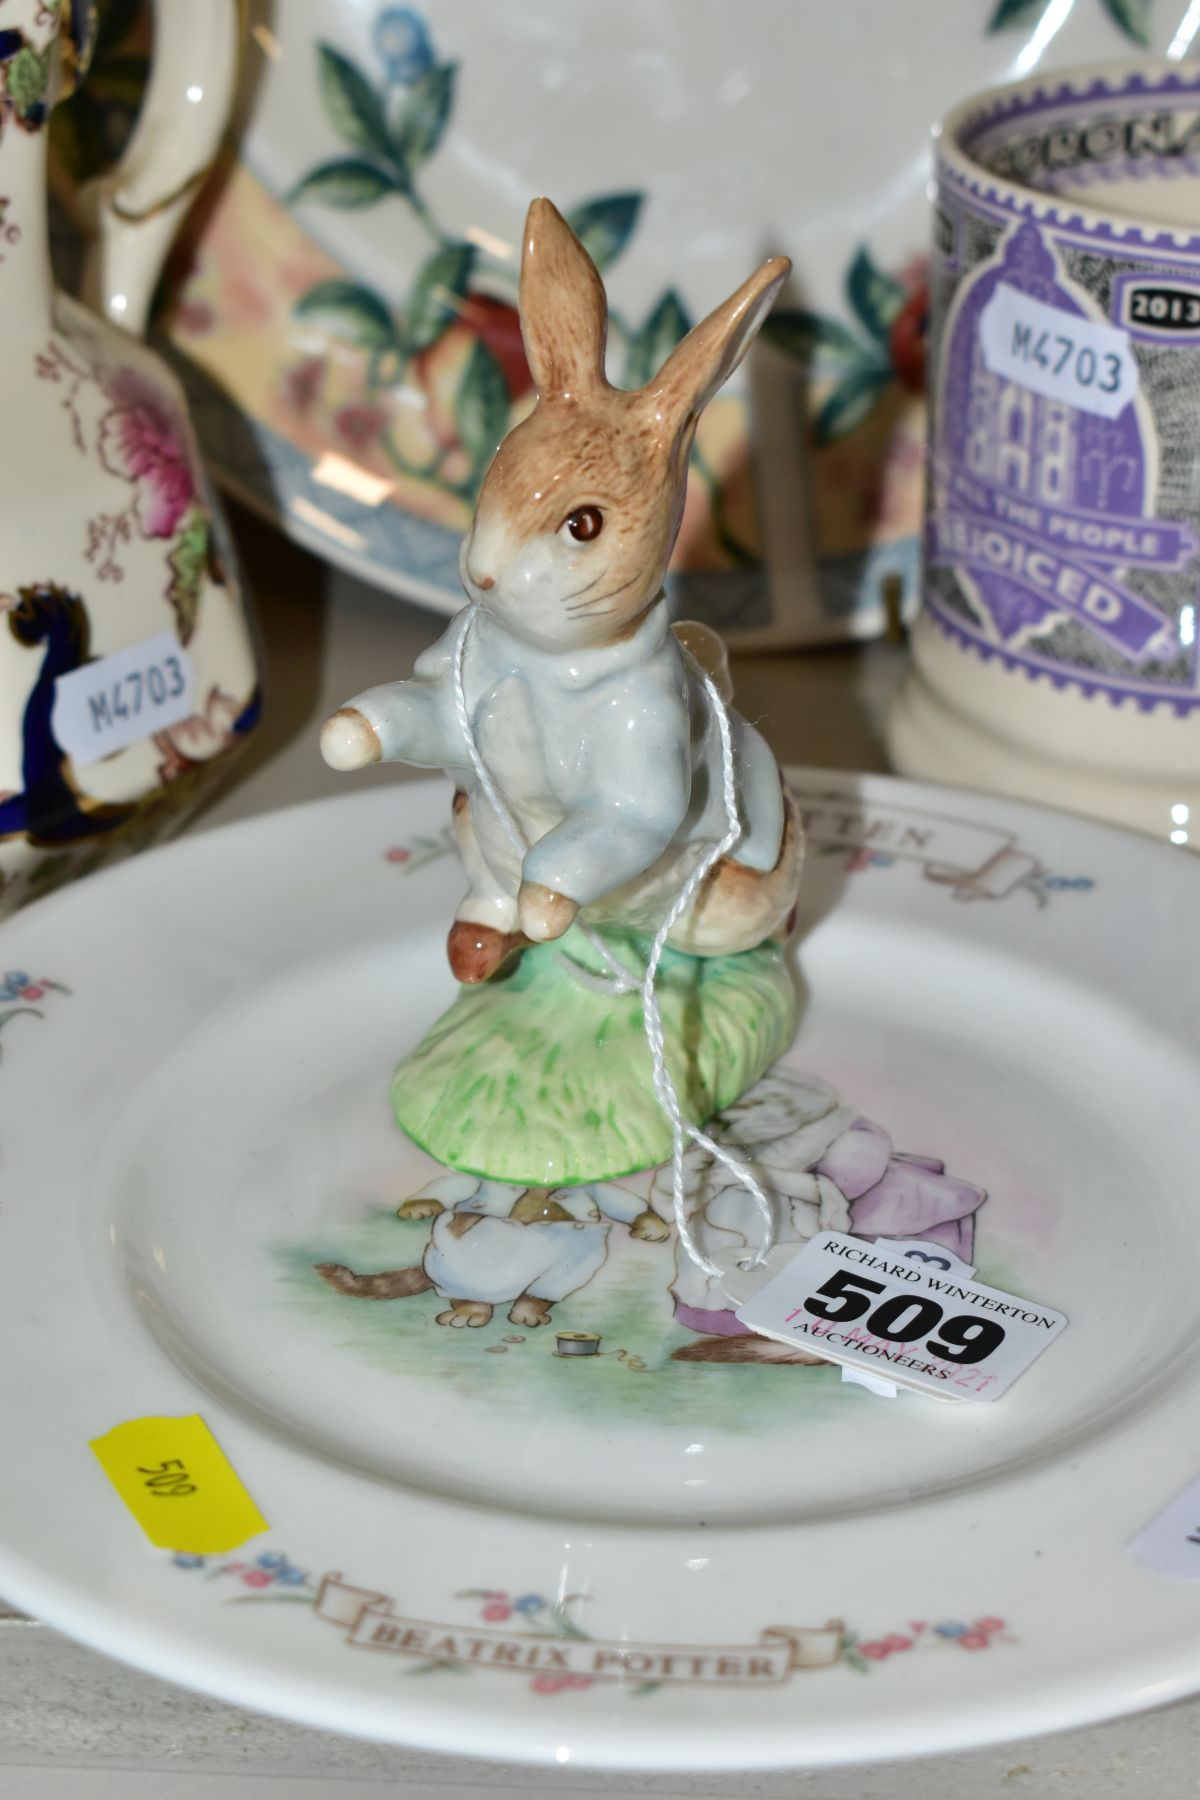 DECORATIVE CERAMICS ETC, to include a boxed Beswick Peter Rabbit, Royal Albert 'Tom Kitten' plate, - Image 3 of 11